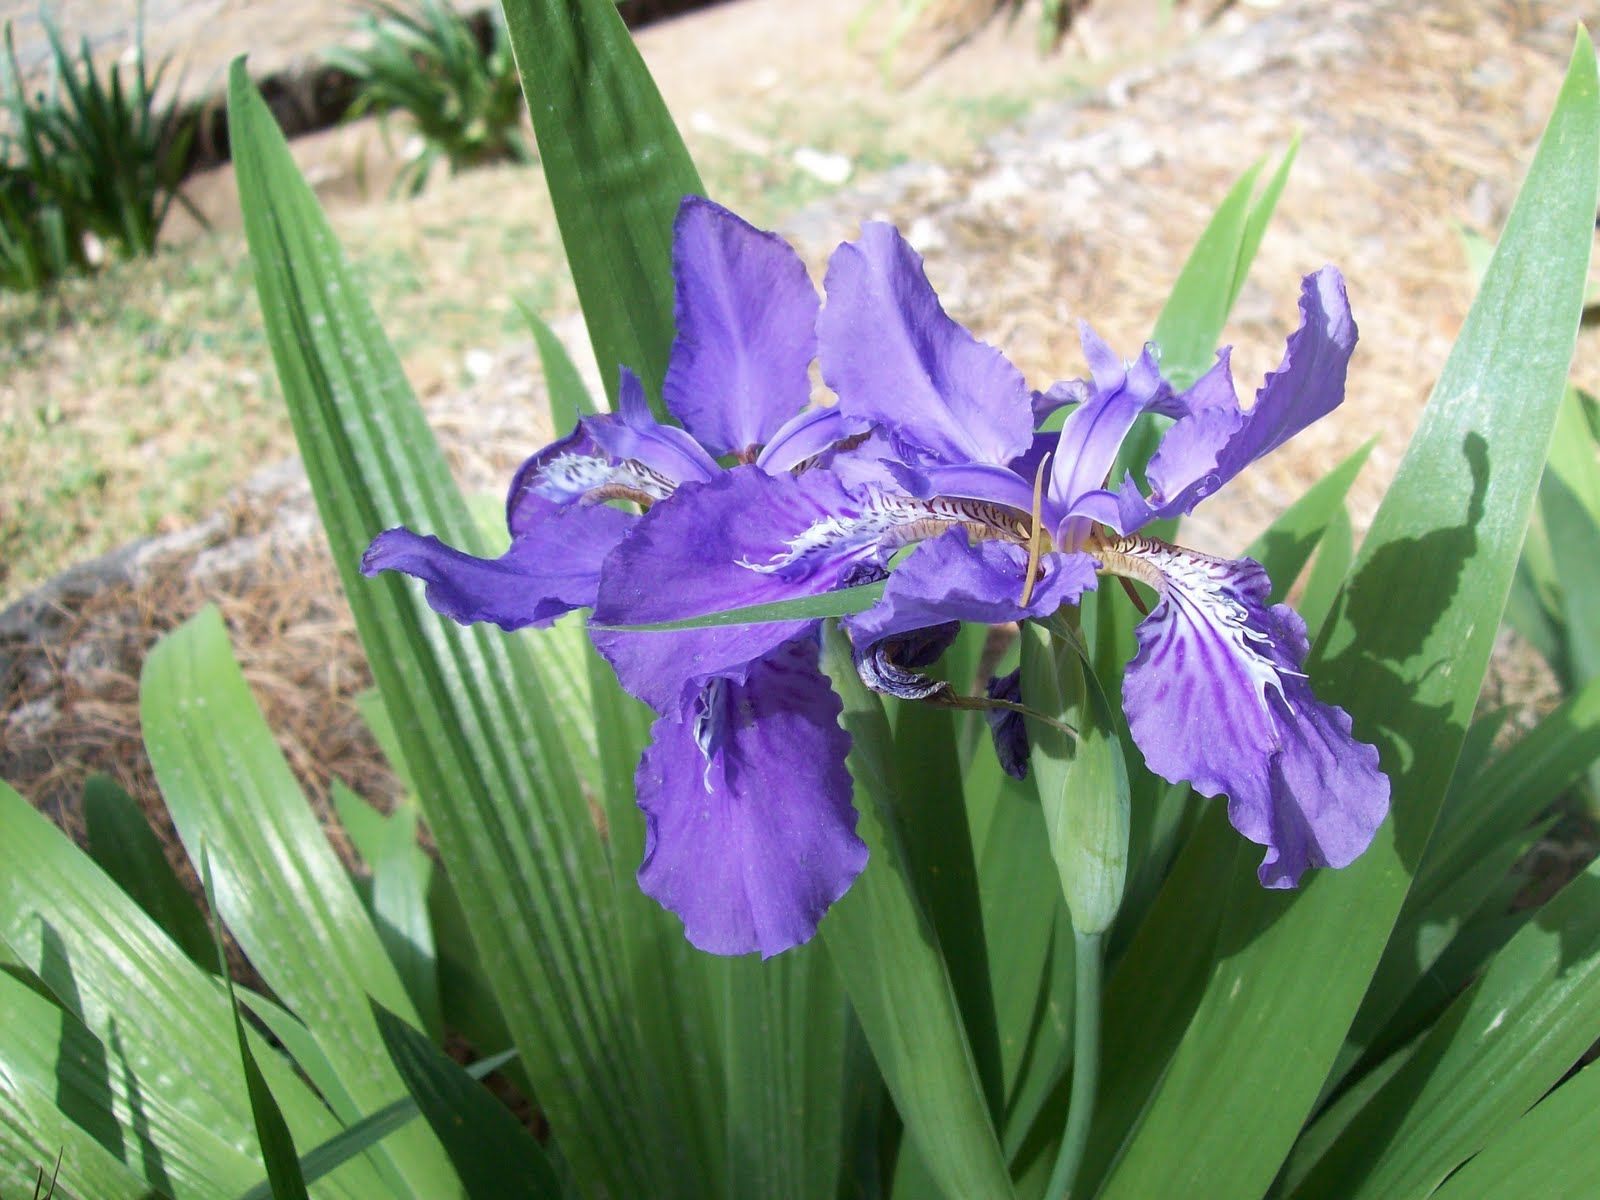 Indian flowers and herbs himalayan iris it is a sight for sore eyes to see the himlayan iris iris nepalensis cover whole mountainsides in spring the violet flower has white and yellow markings izmirmasajfo